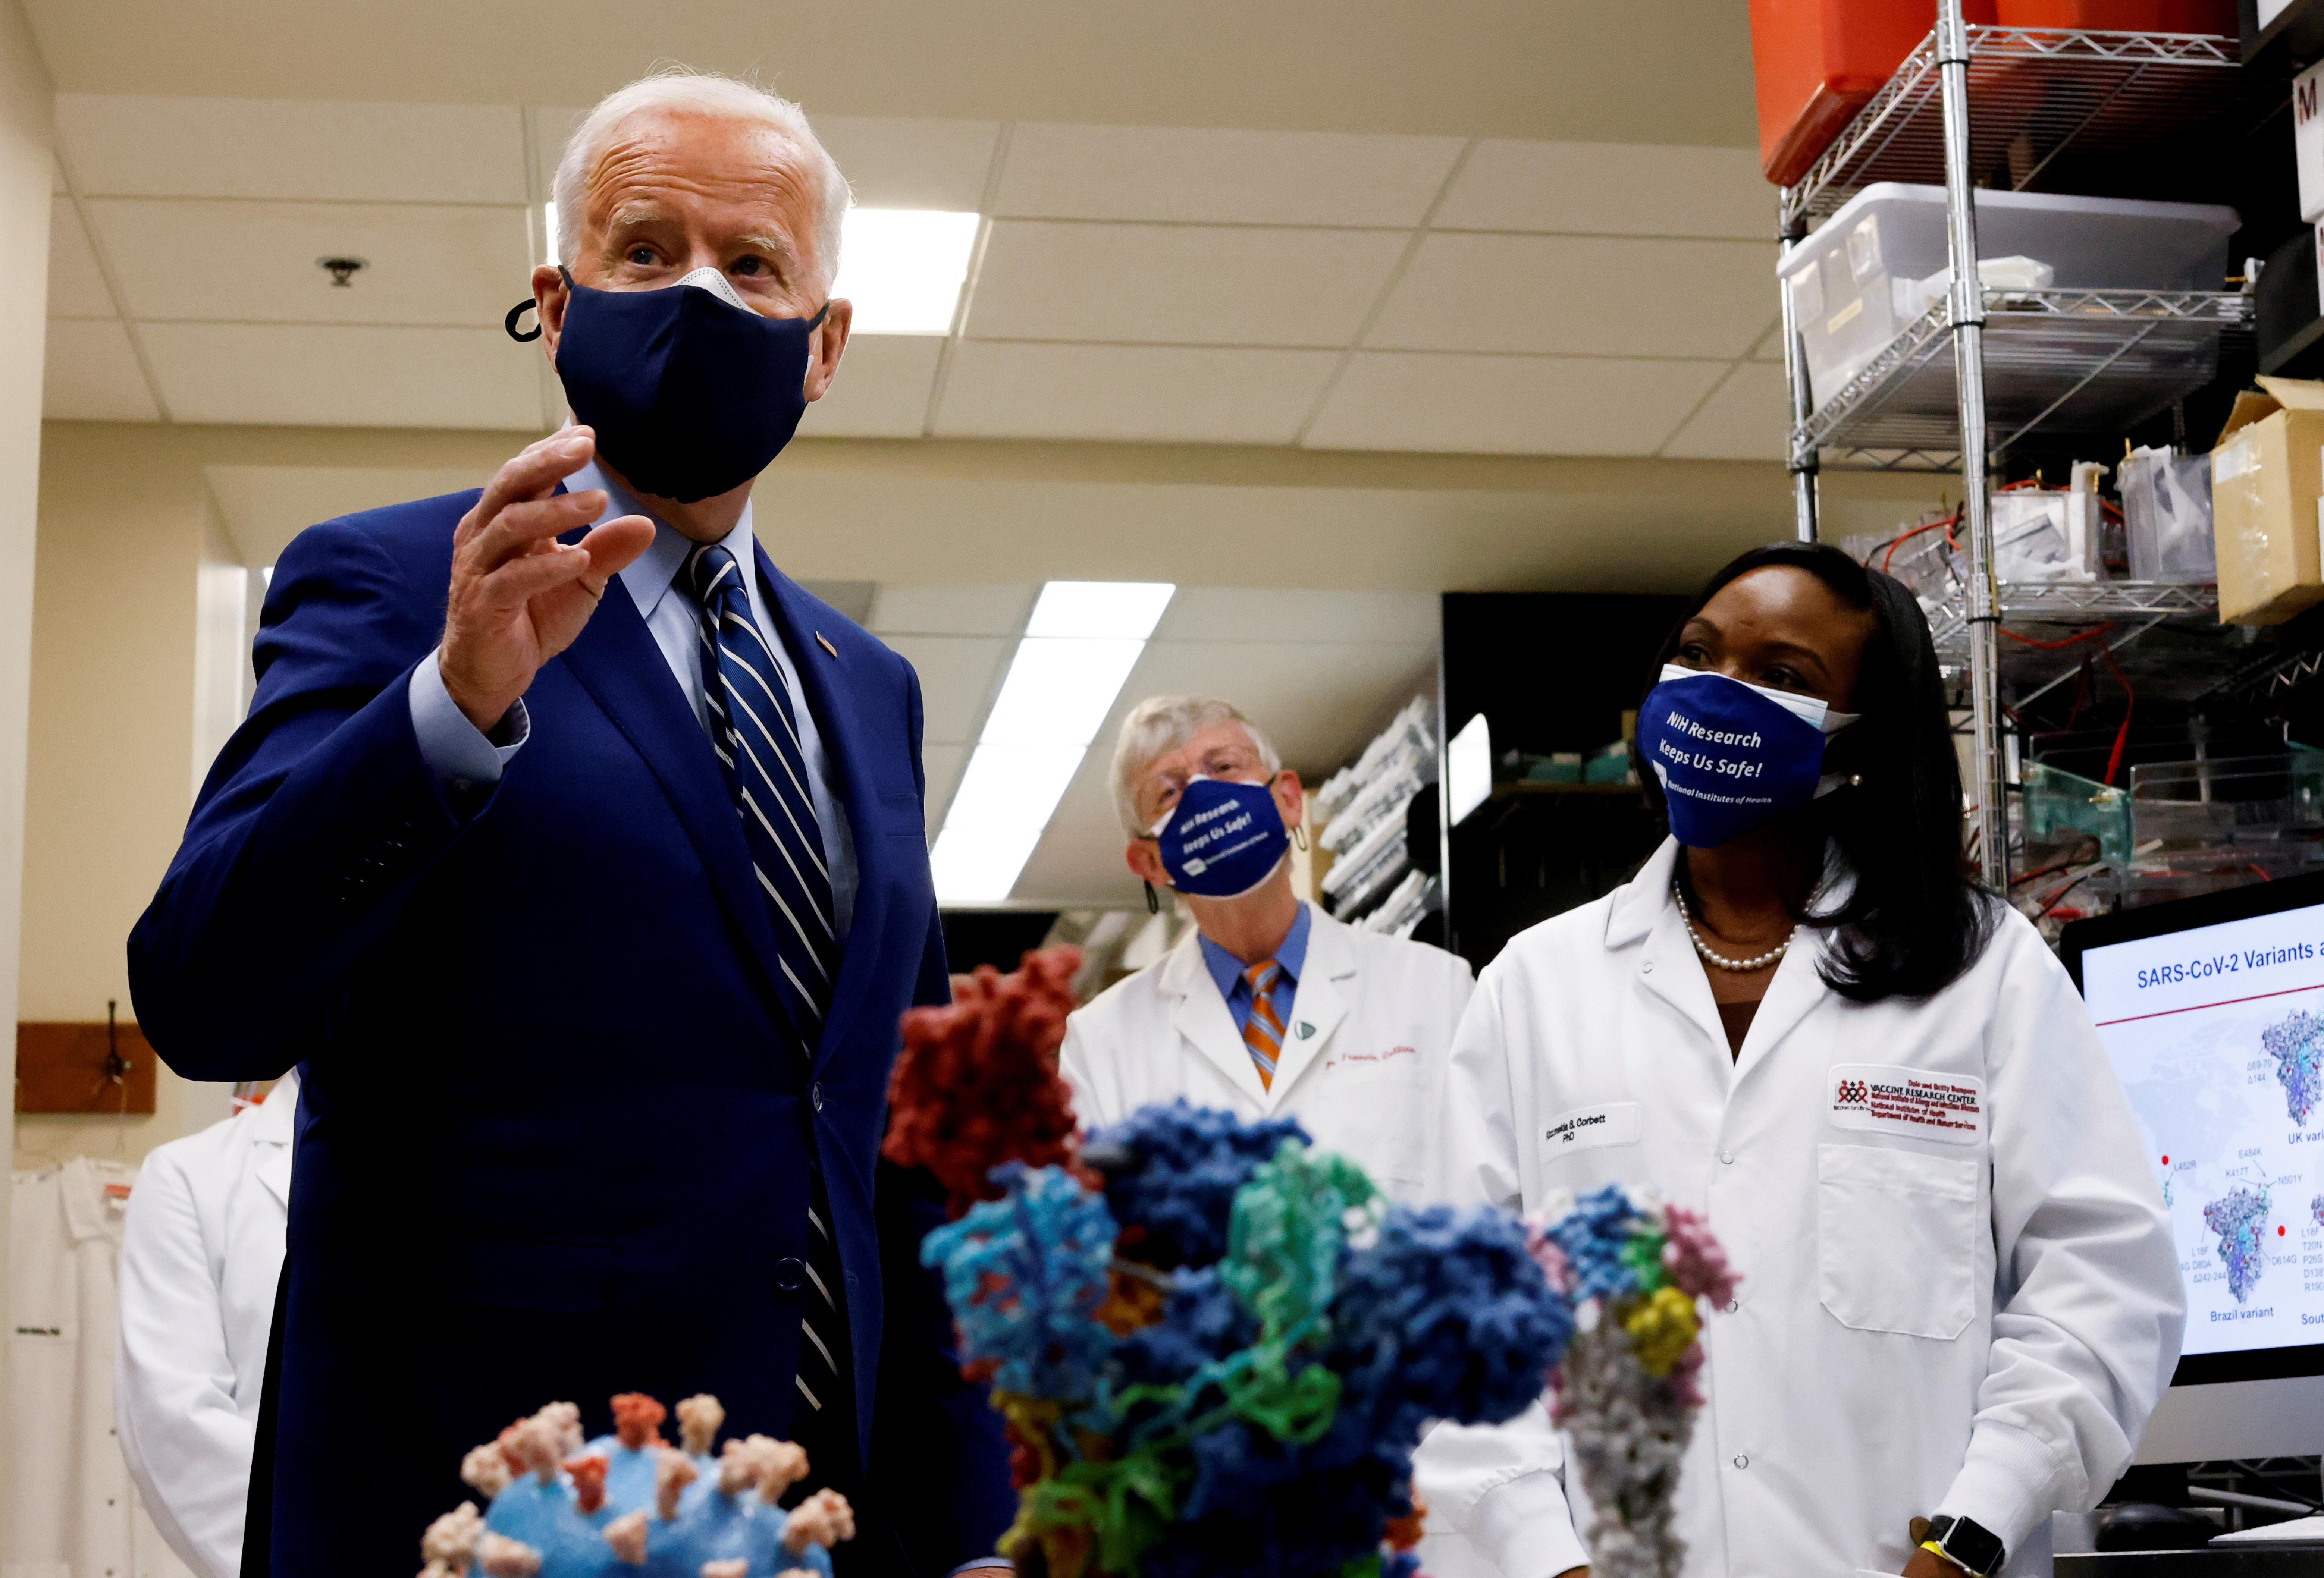 U.S. President Joe Biden speaks next to an NIH staff member as NIH Director Francis Collins listens during a visit to the Viral Pathogenesis Laboratory at the National Institutes of Health (NIH) in Bethesda, Maryland, U.S., February 11, 2021.